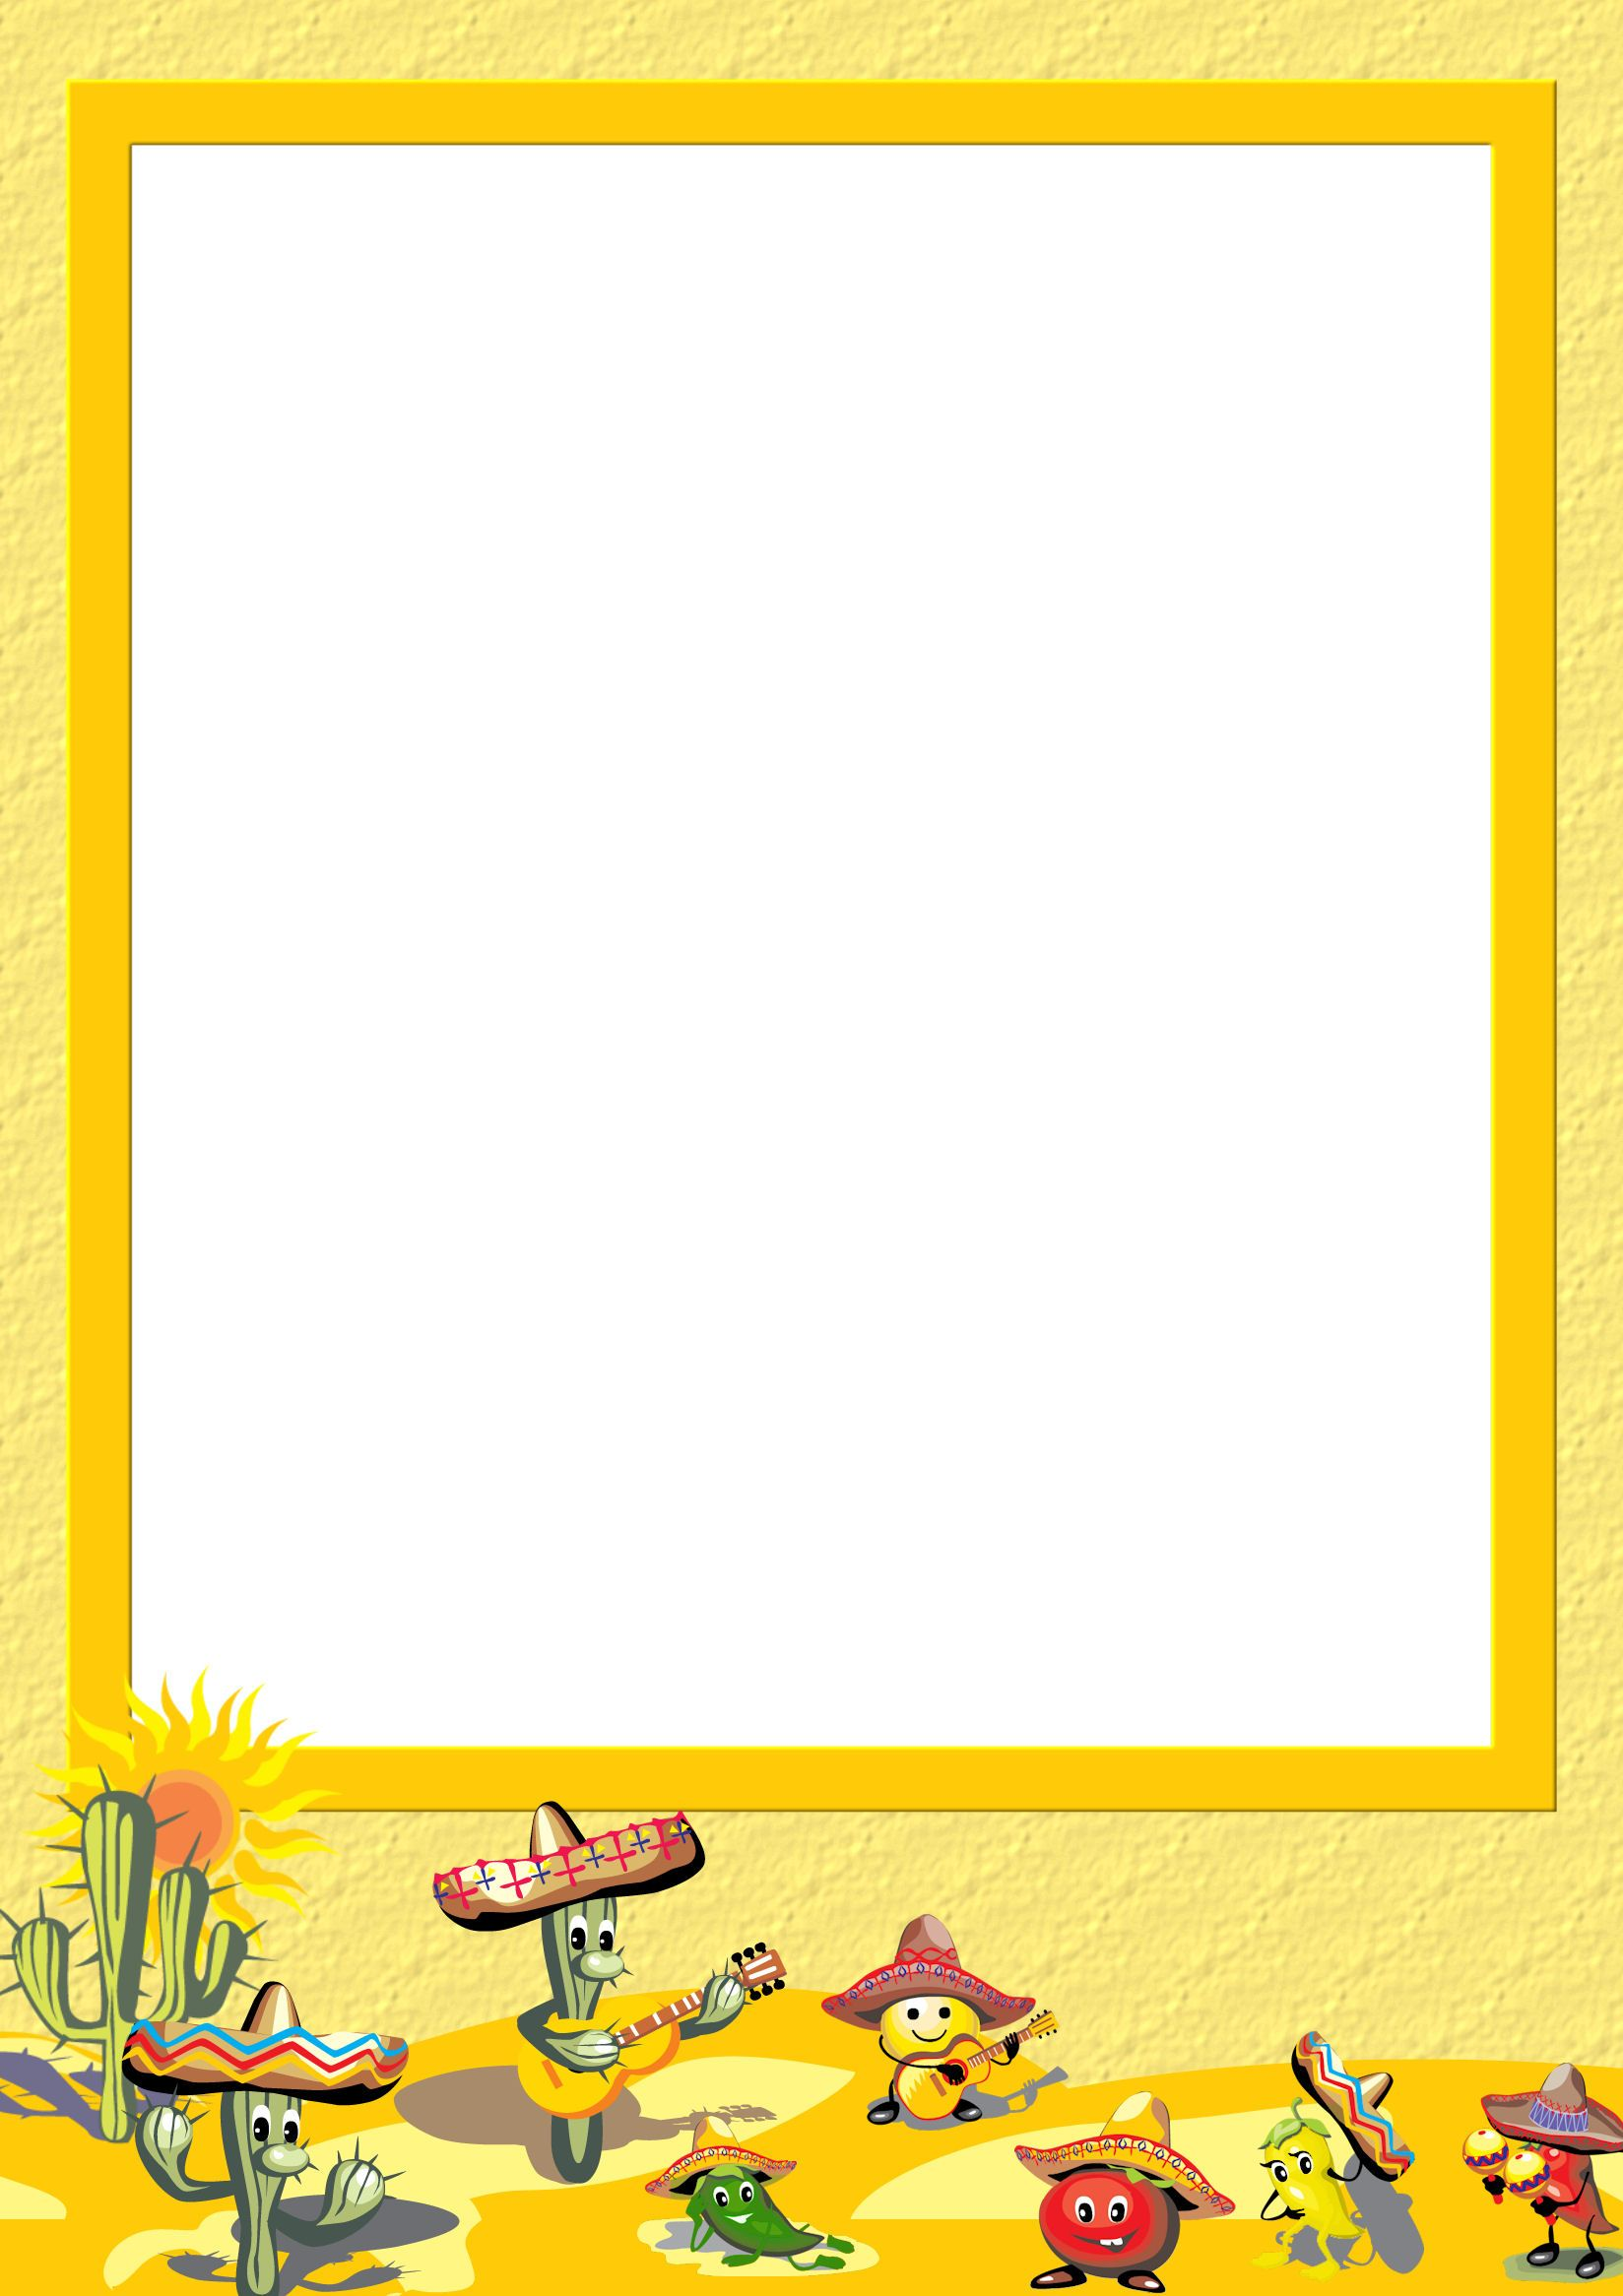 1 Computer Stationery Stationery Template Papers Cinco De Mayo Stationery Free